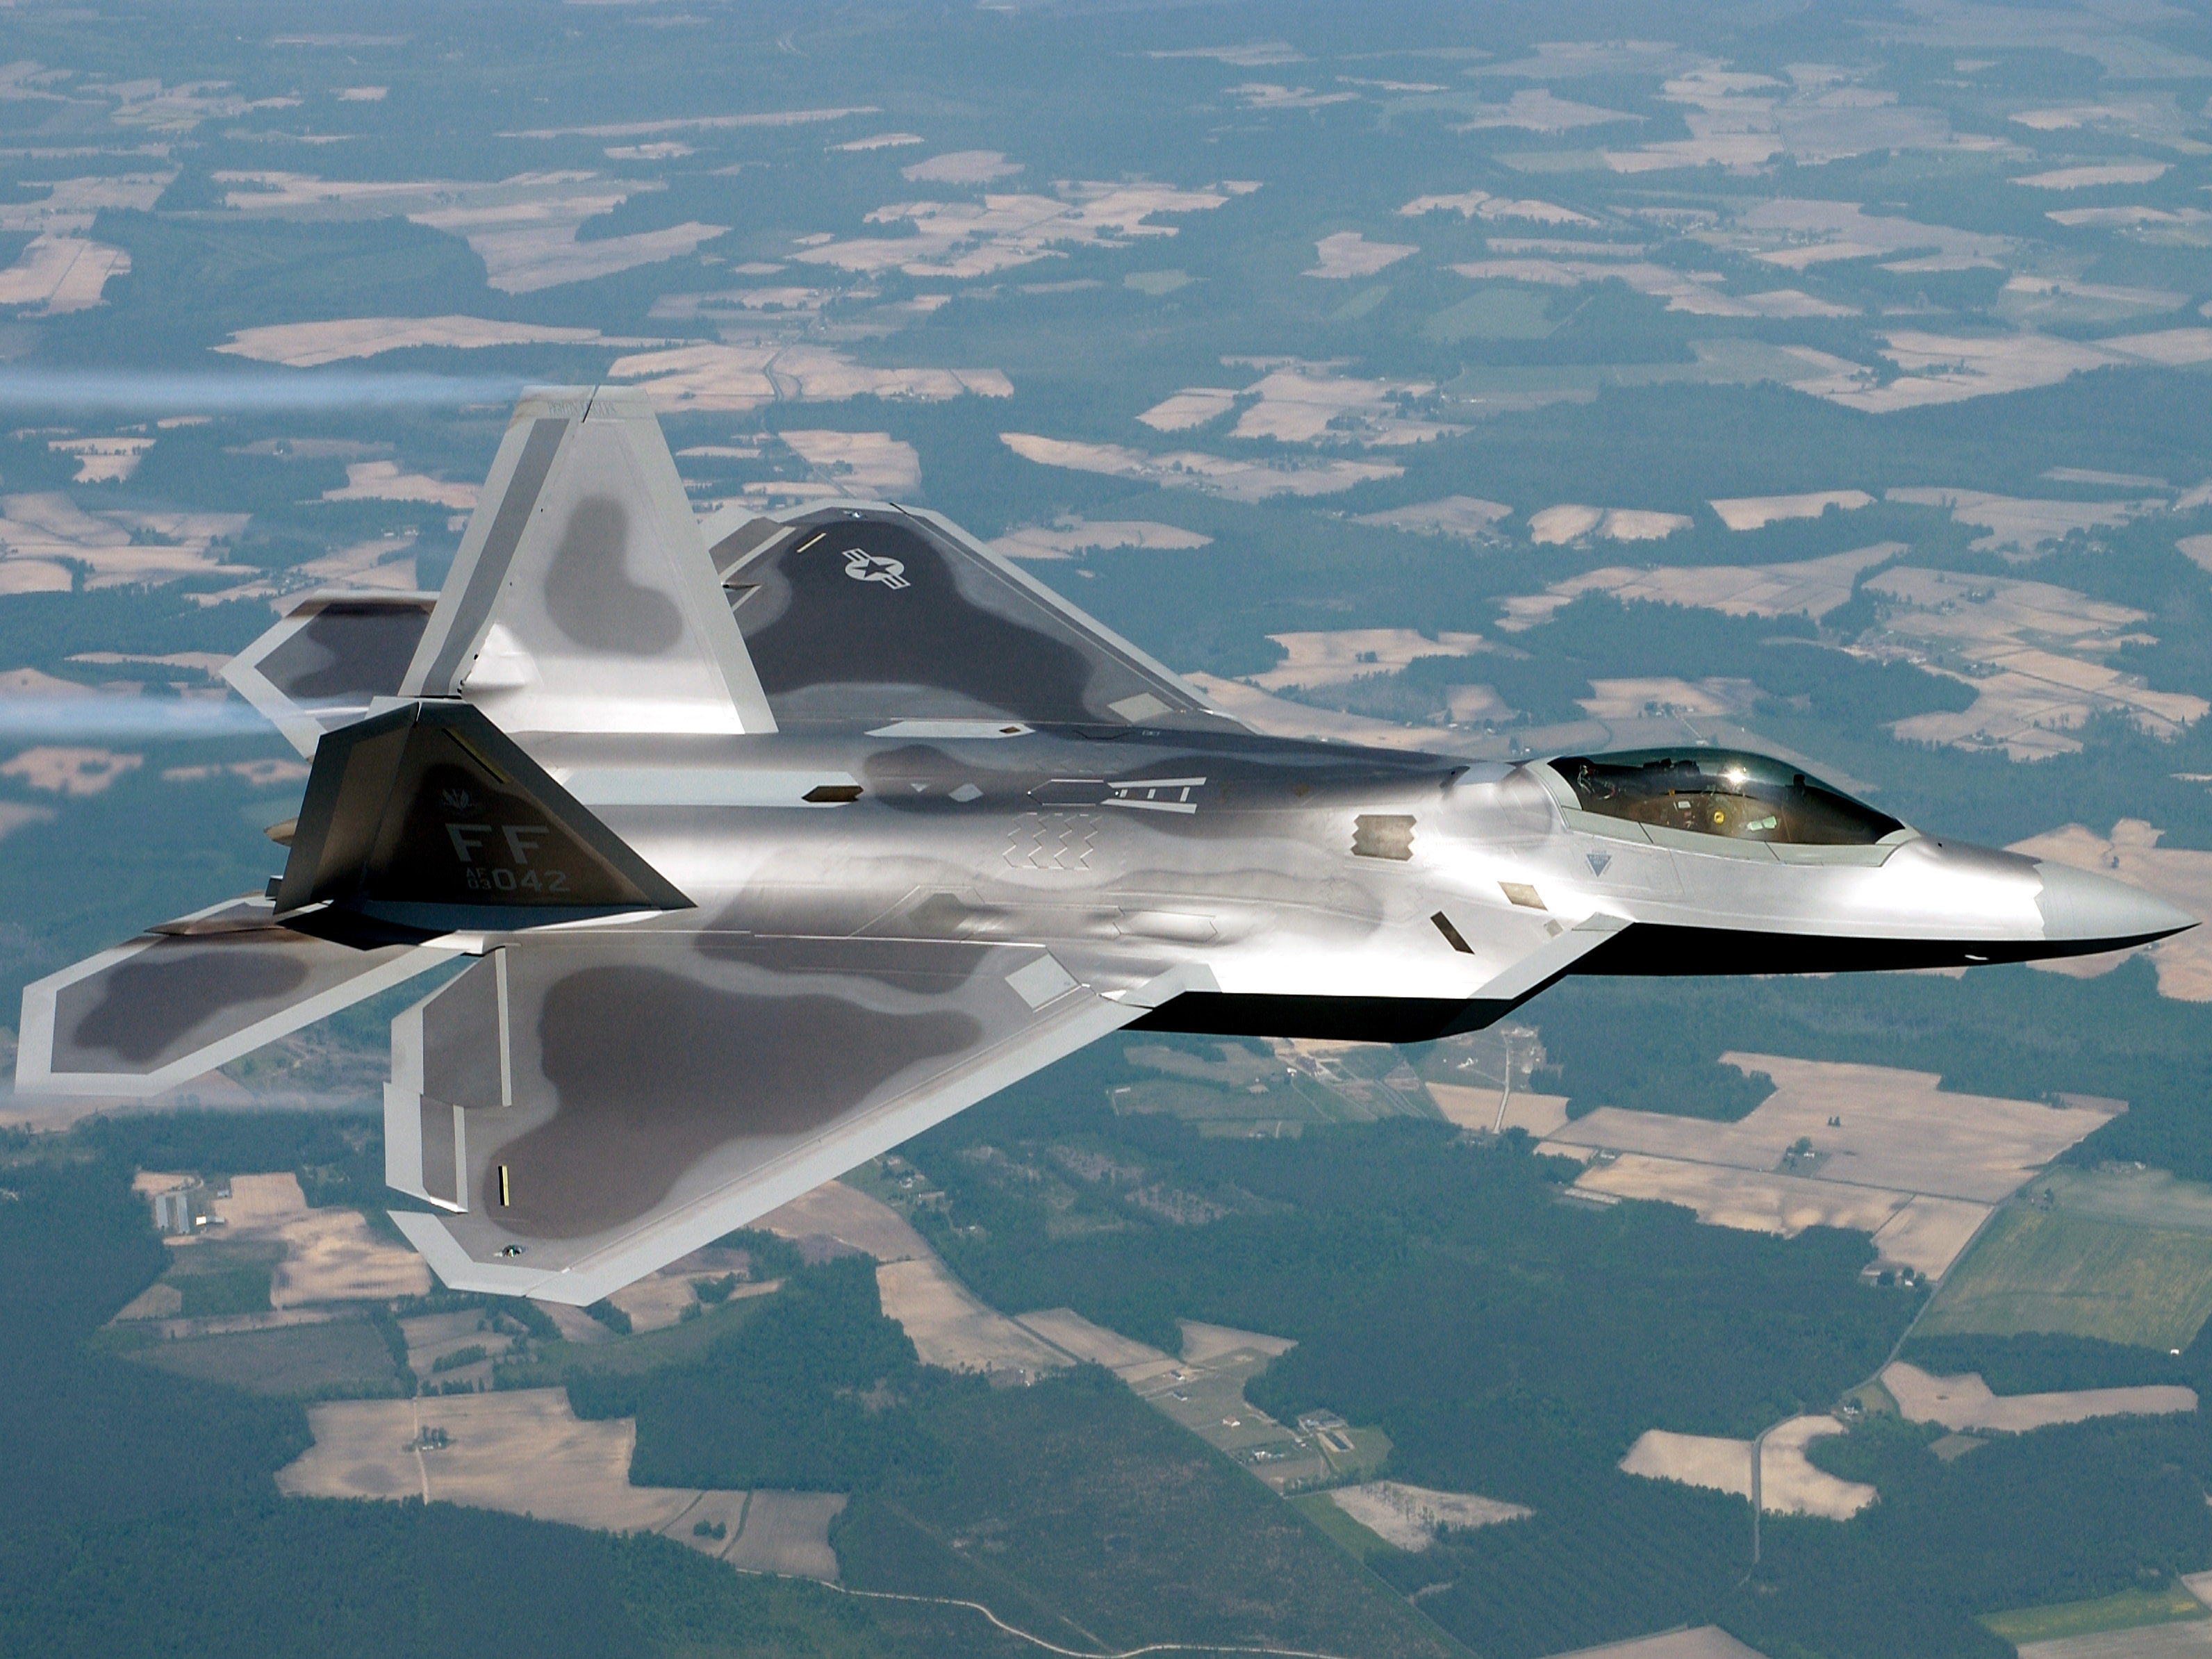 102 lockheed martin f-22 raptor hd wallpapers | background images